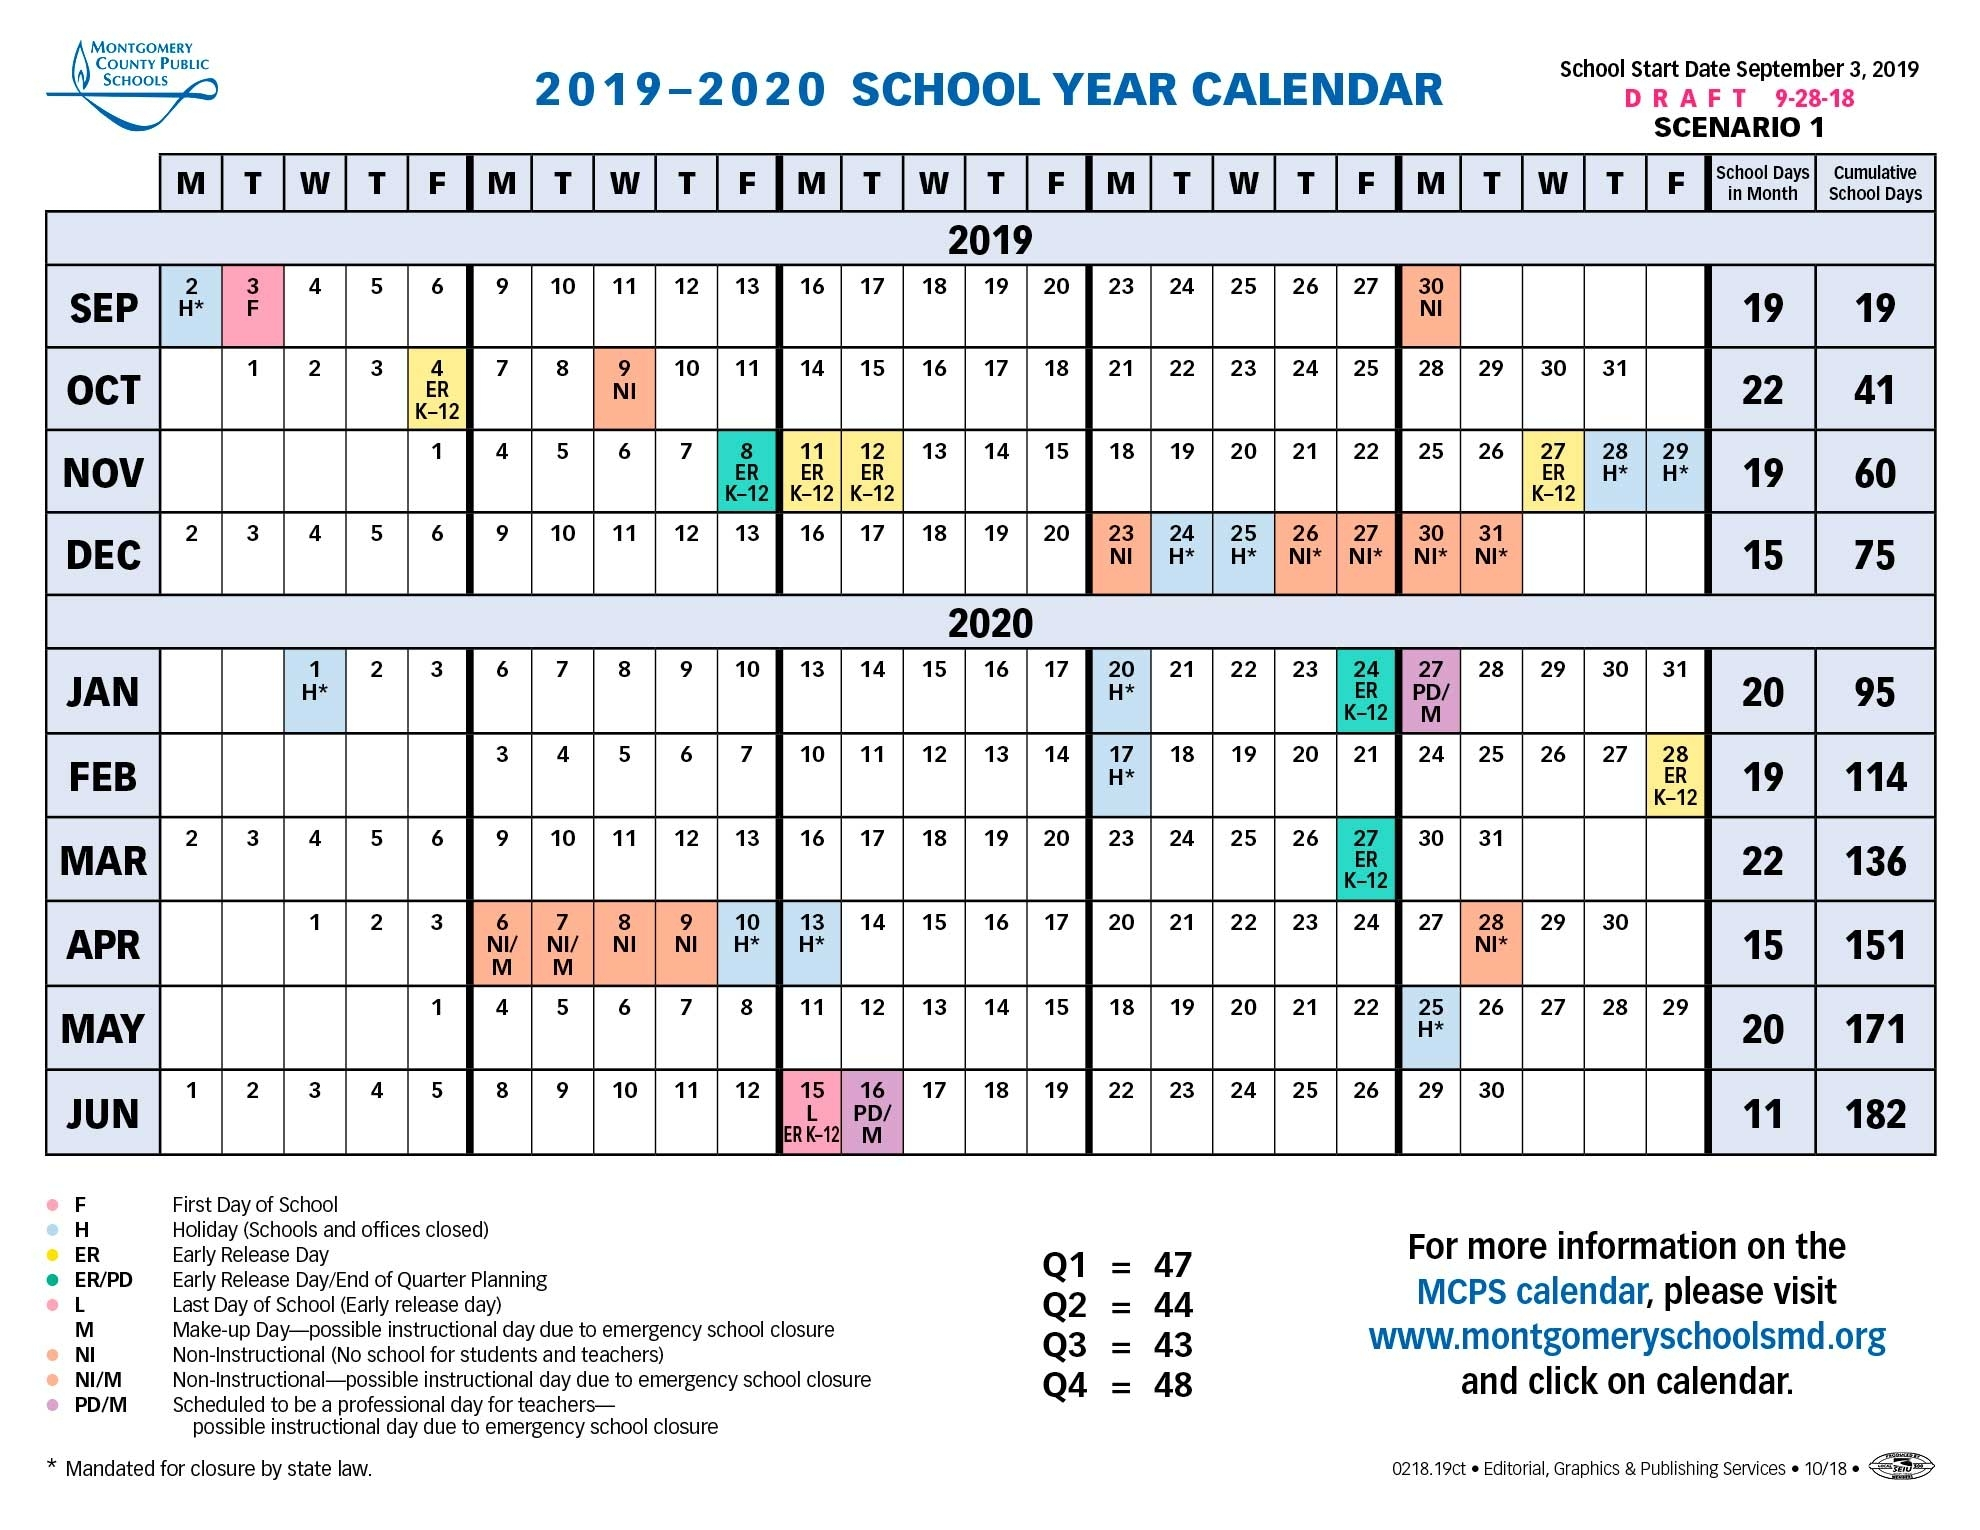 School Board Approves Longer Spring Break For 2019-2020